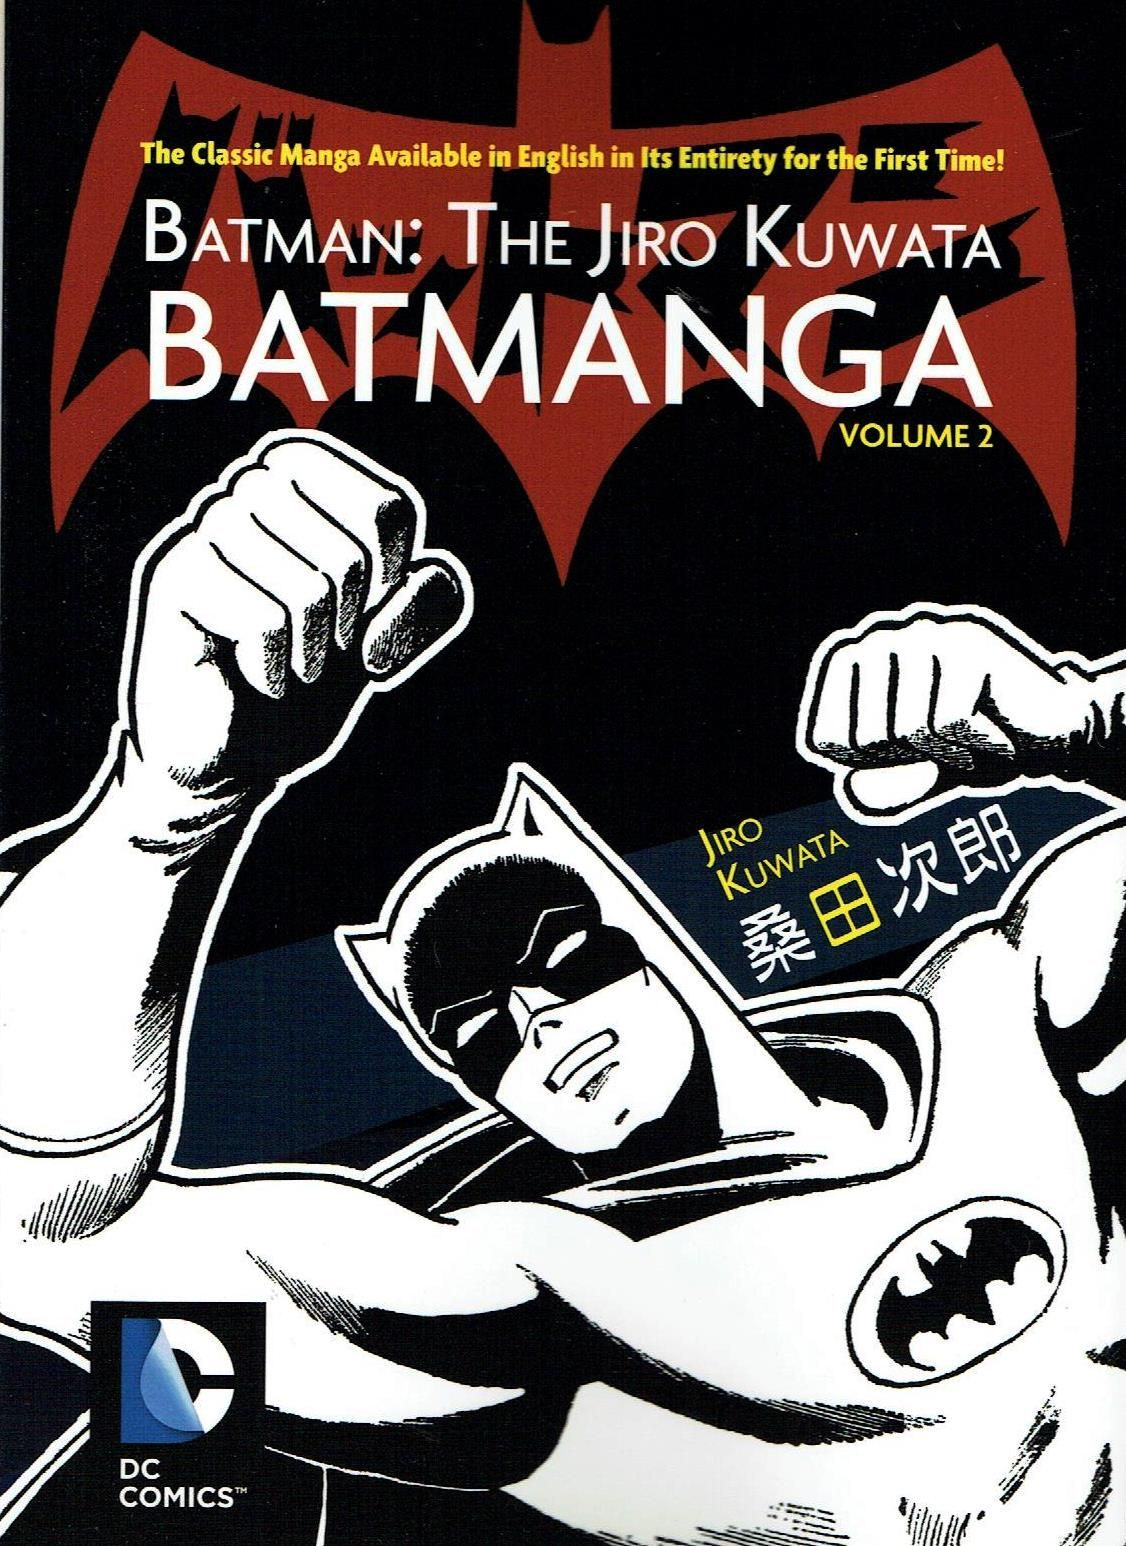 Batman: The Jiro Kuwata Batmanga Volume 2